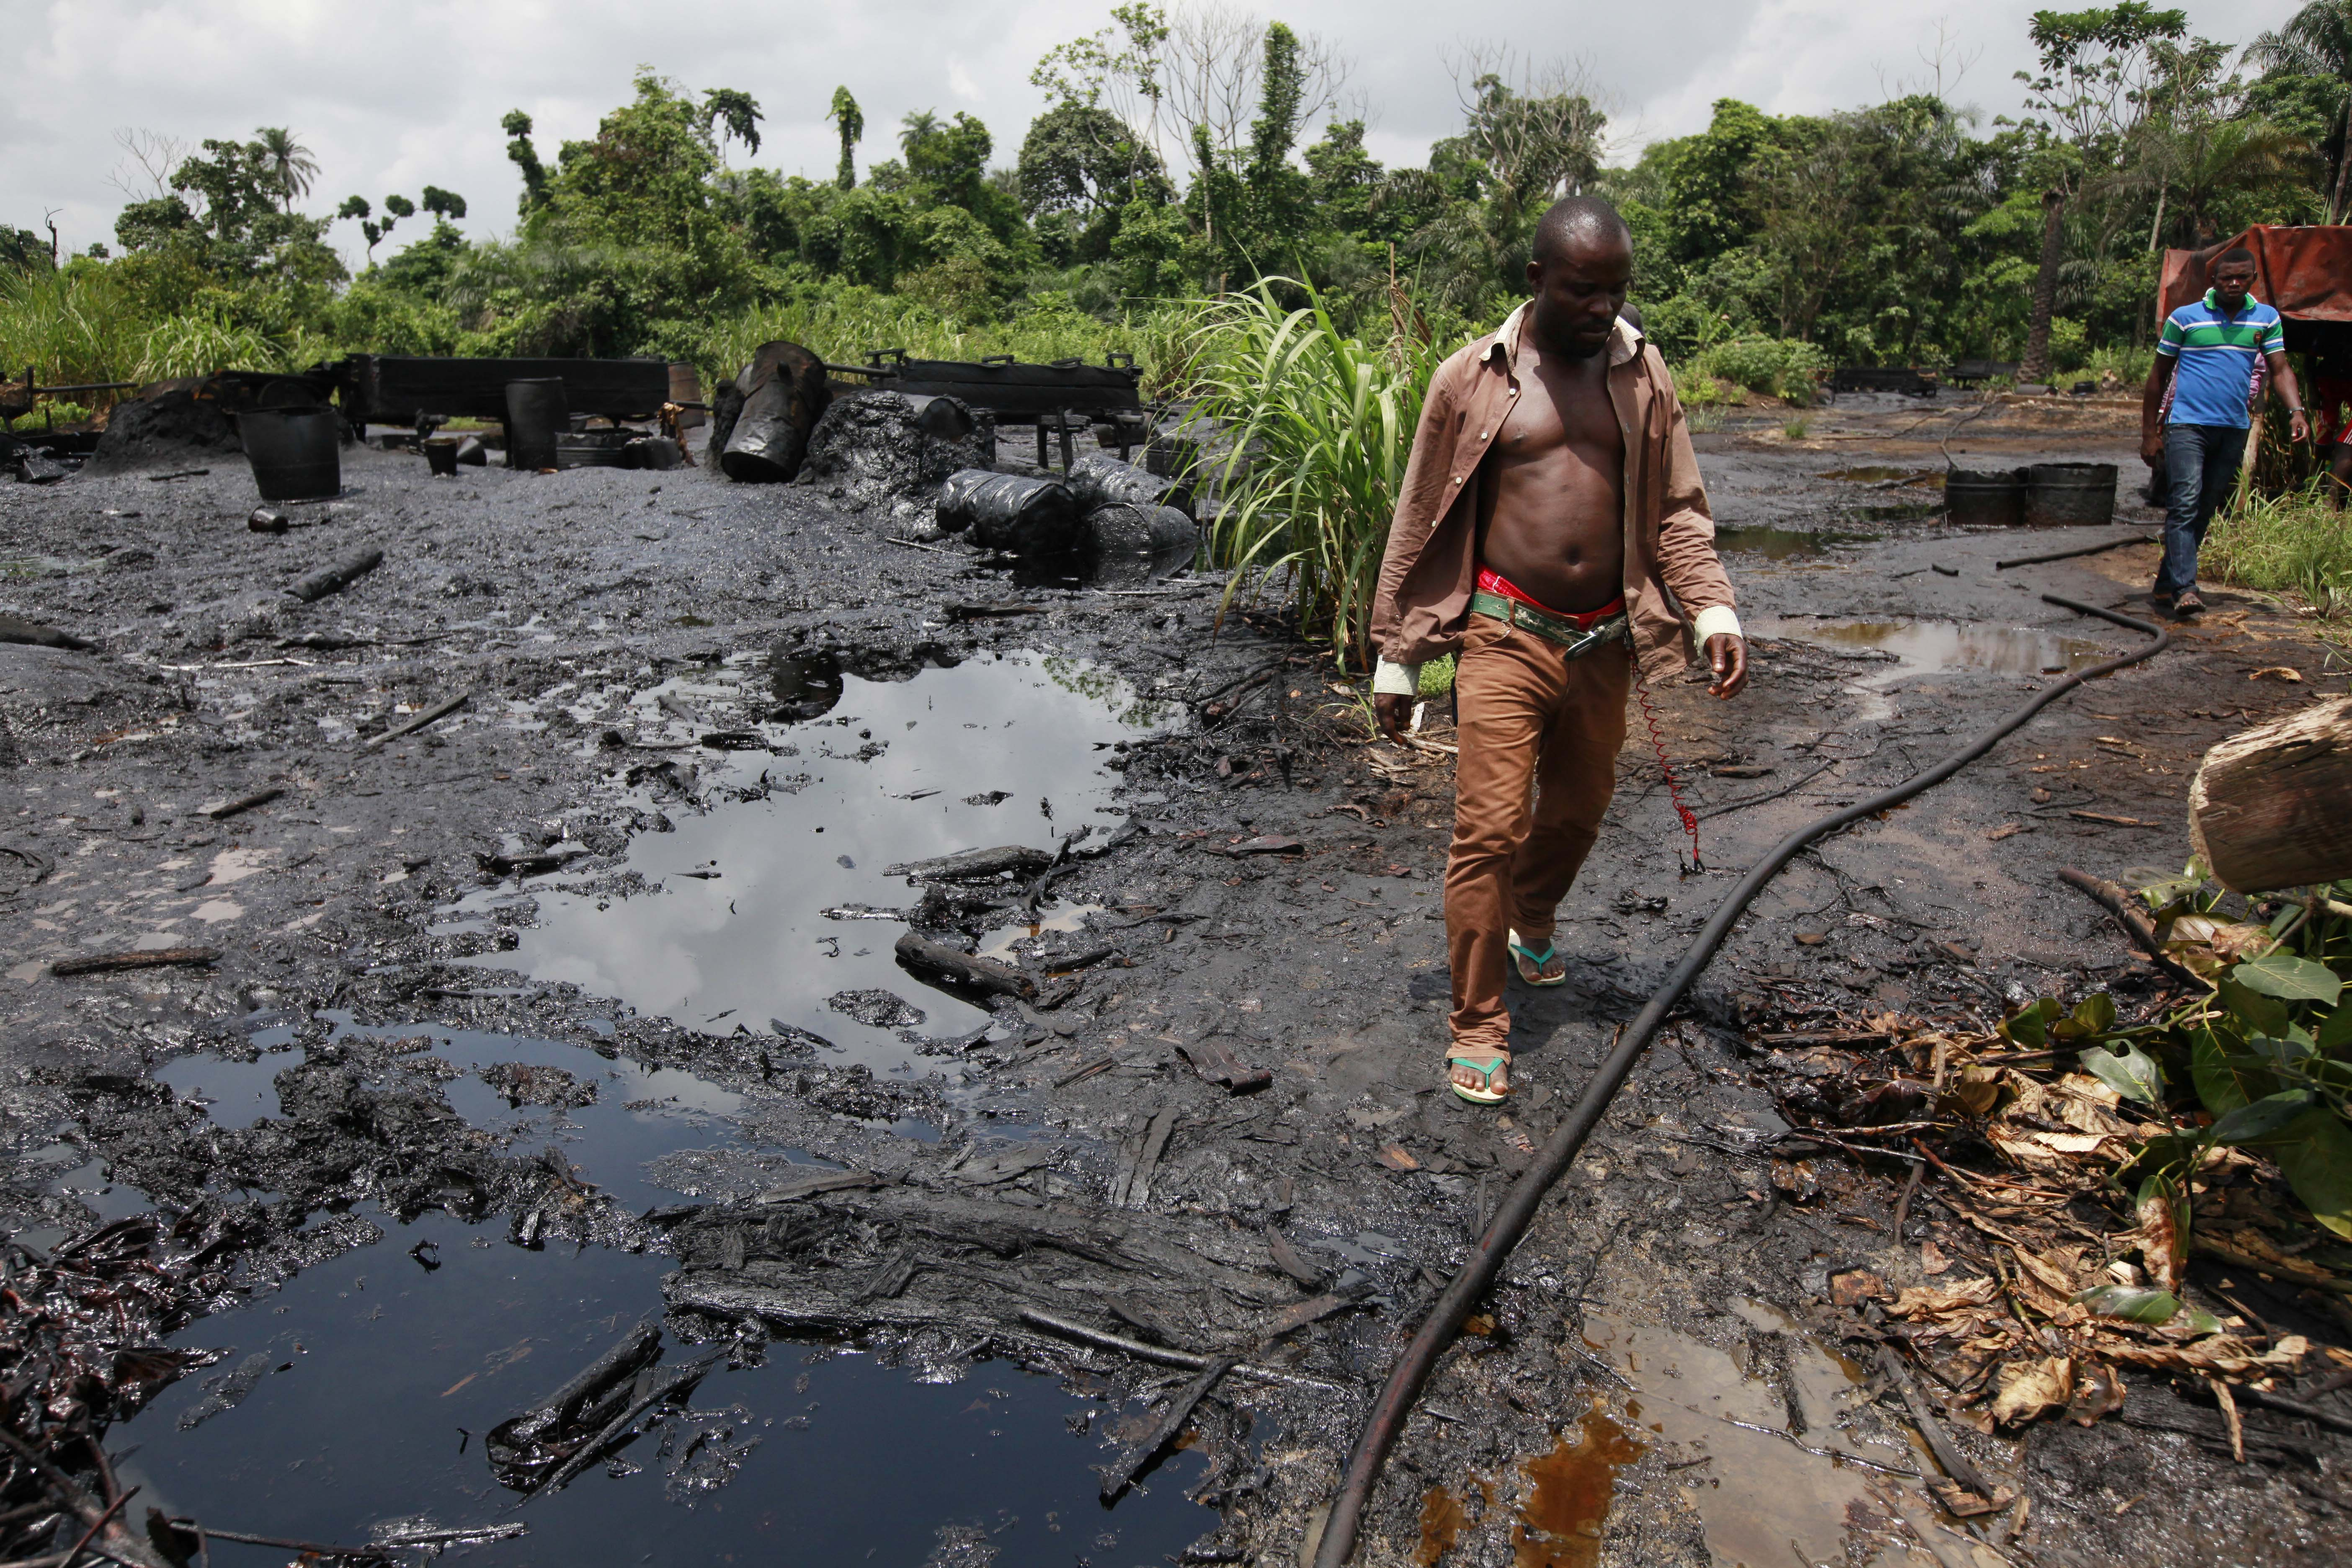 a look at shell oil and the explorations of nigeria New gas and oil drilling explorations and concessions are popping up all over the  arctic 1, shell oil 0,  what does a terrestrial oil spill look like.